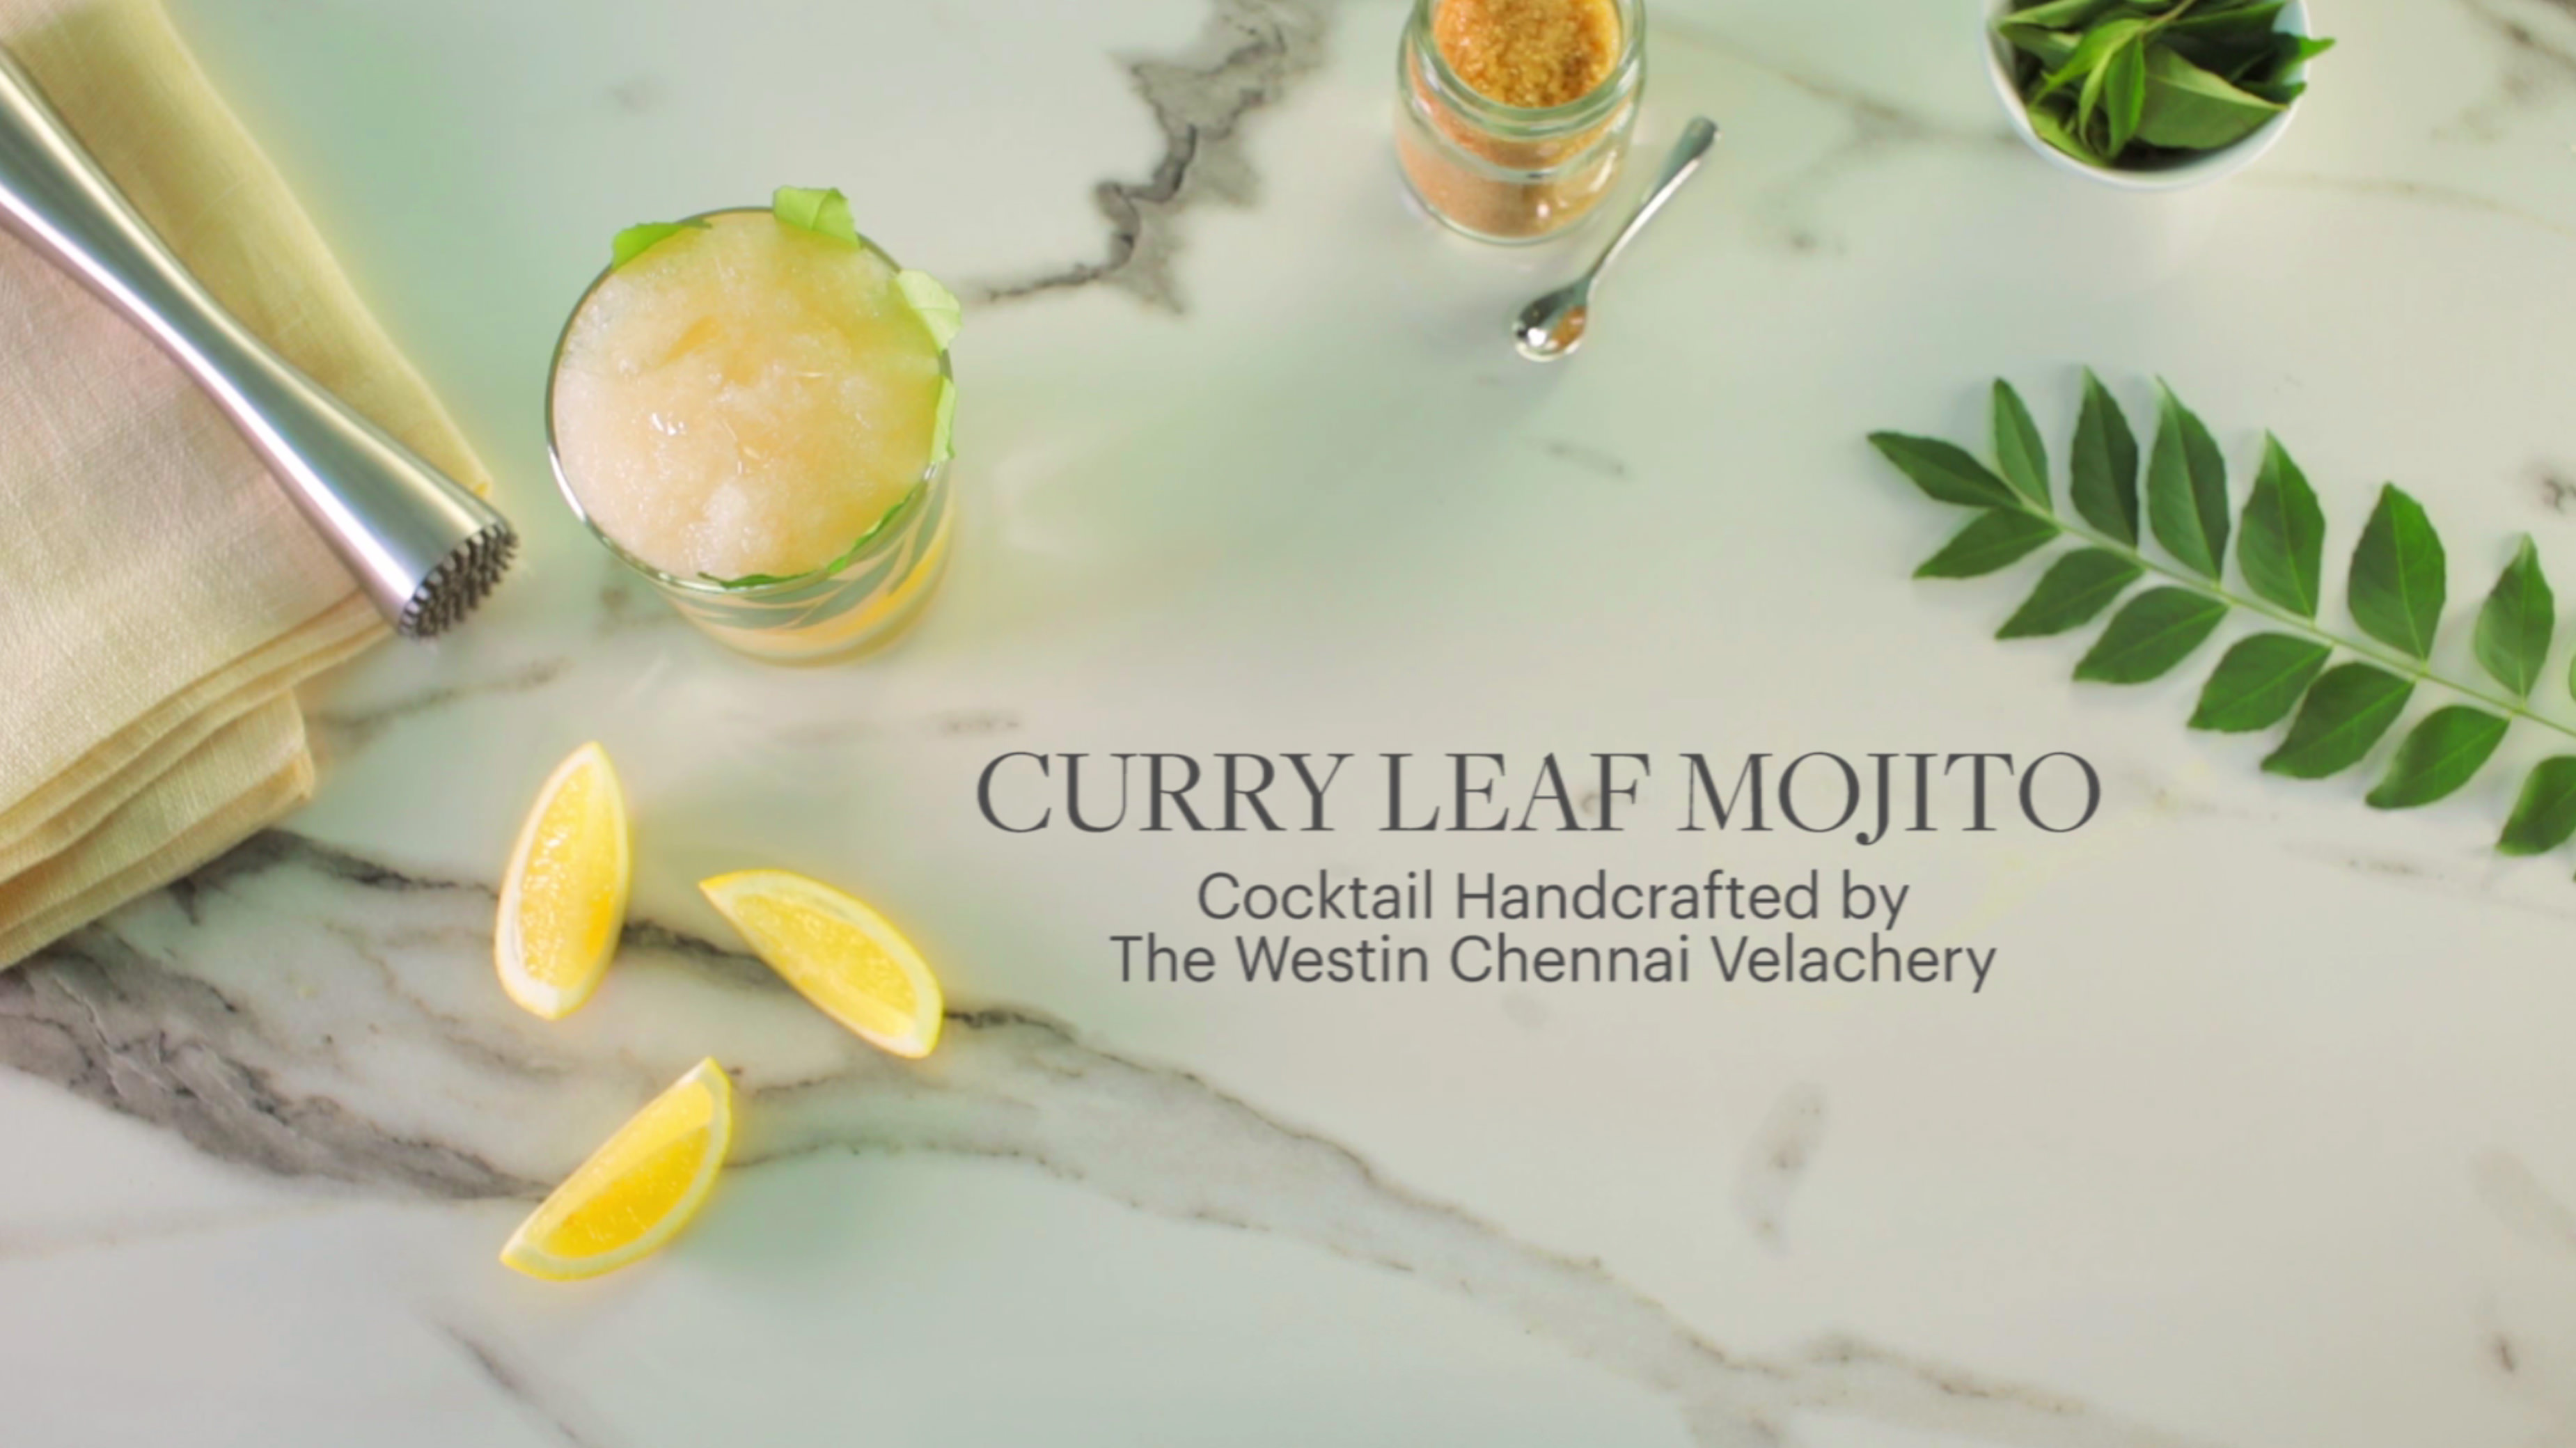 The Westin Chennai Velachery - Curry Leaf Mojito